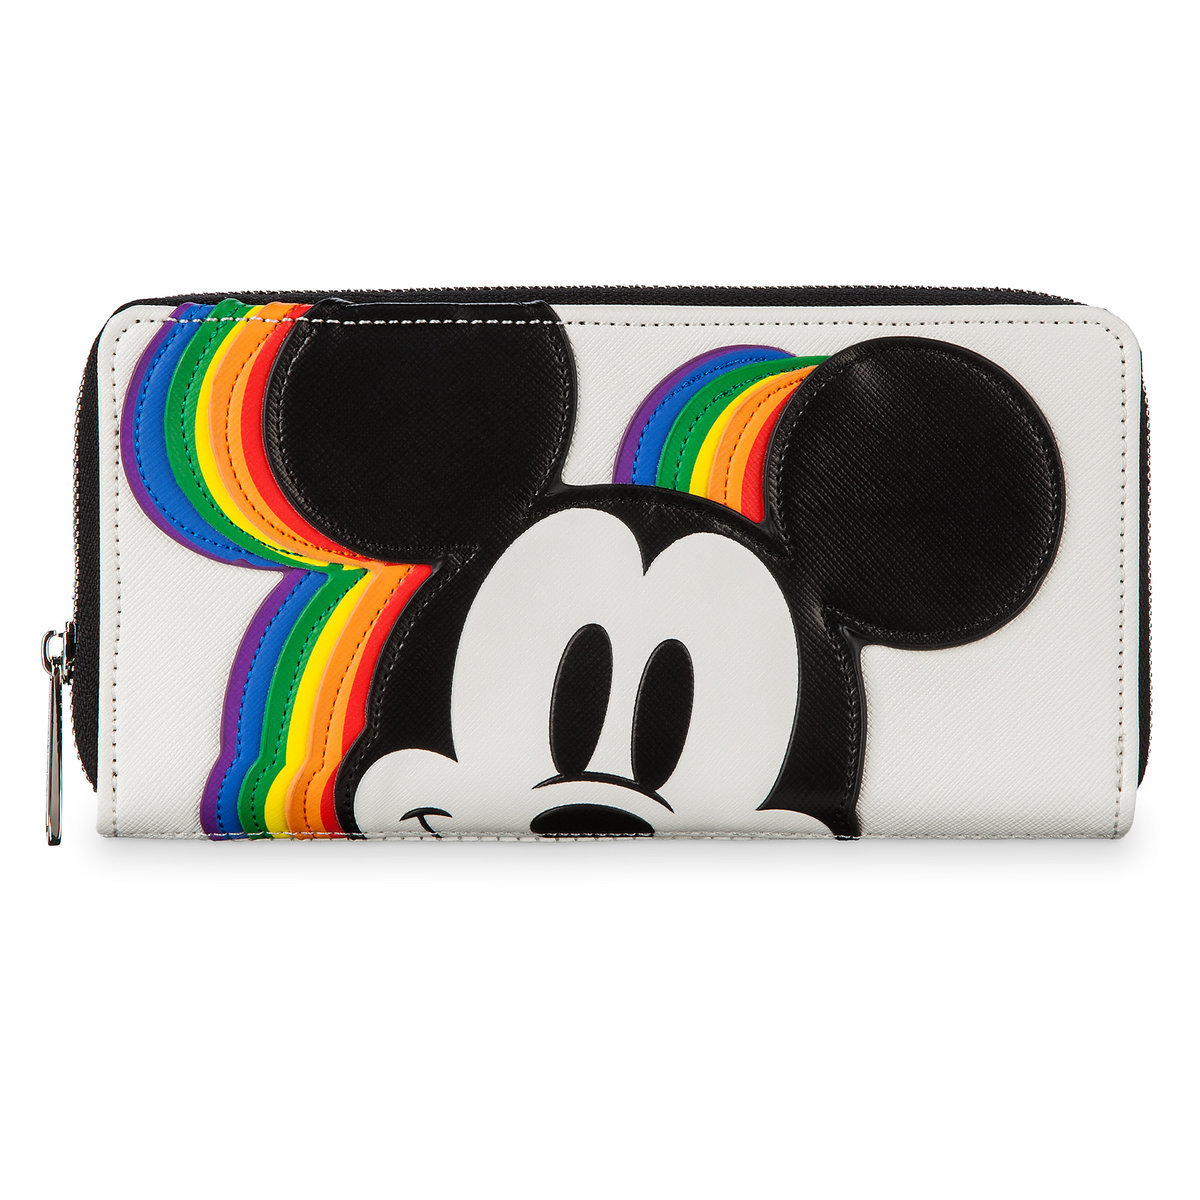 8eecc689ff177 Product Image of Mickey Mouse Rainbow Wallet by Loungefly   1